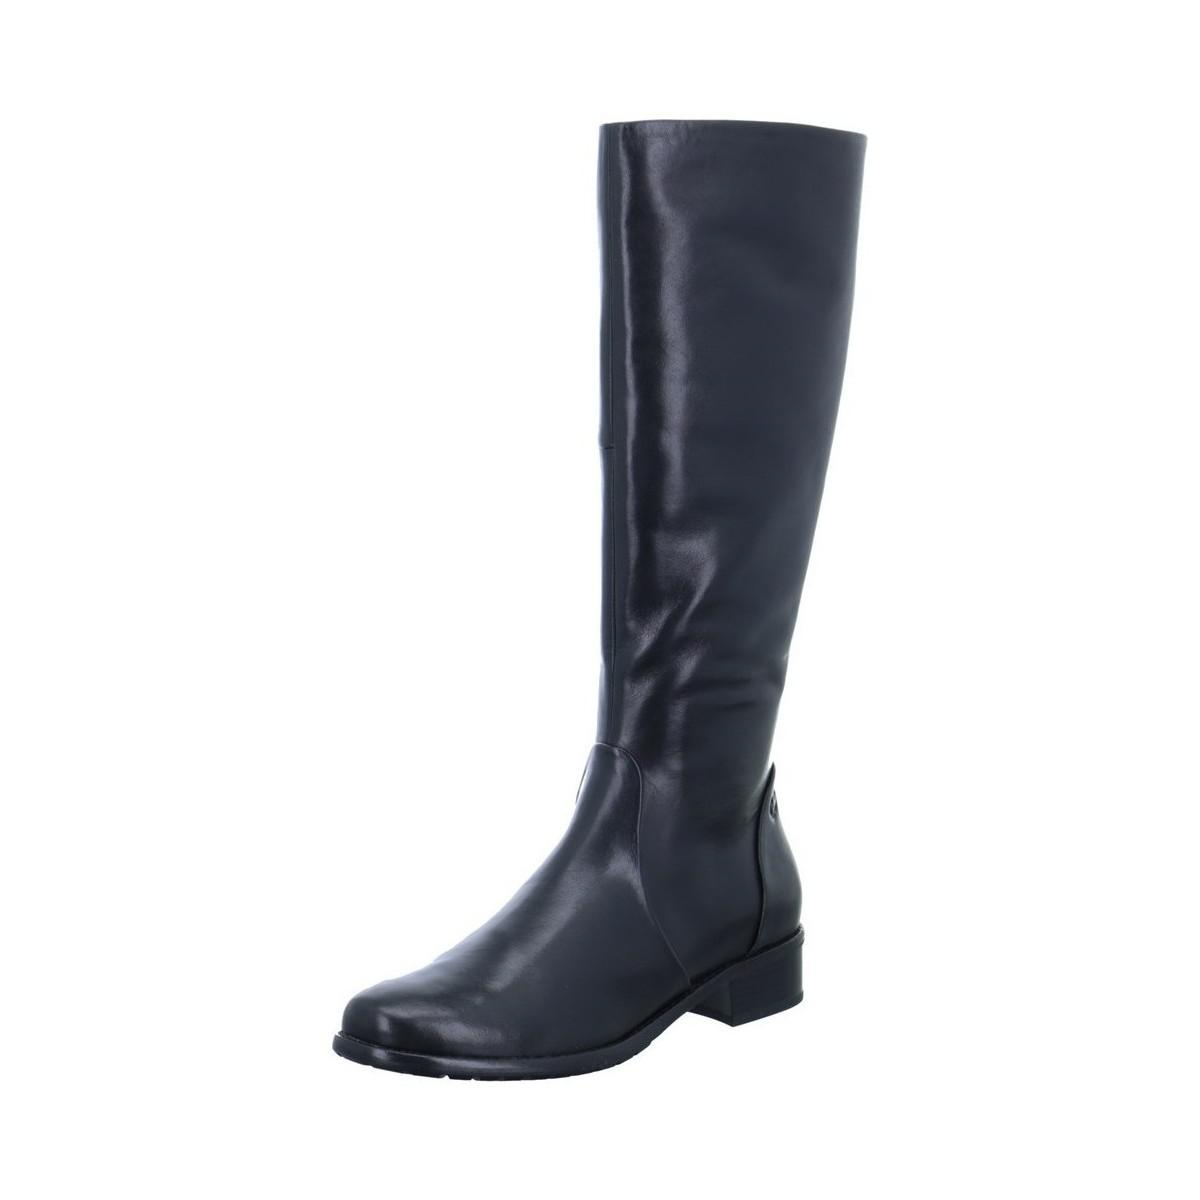 Calla 05, Womens Ankle Boots Gerry Weber